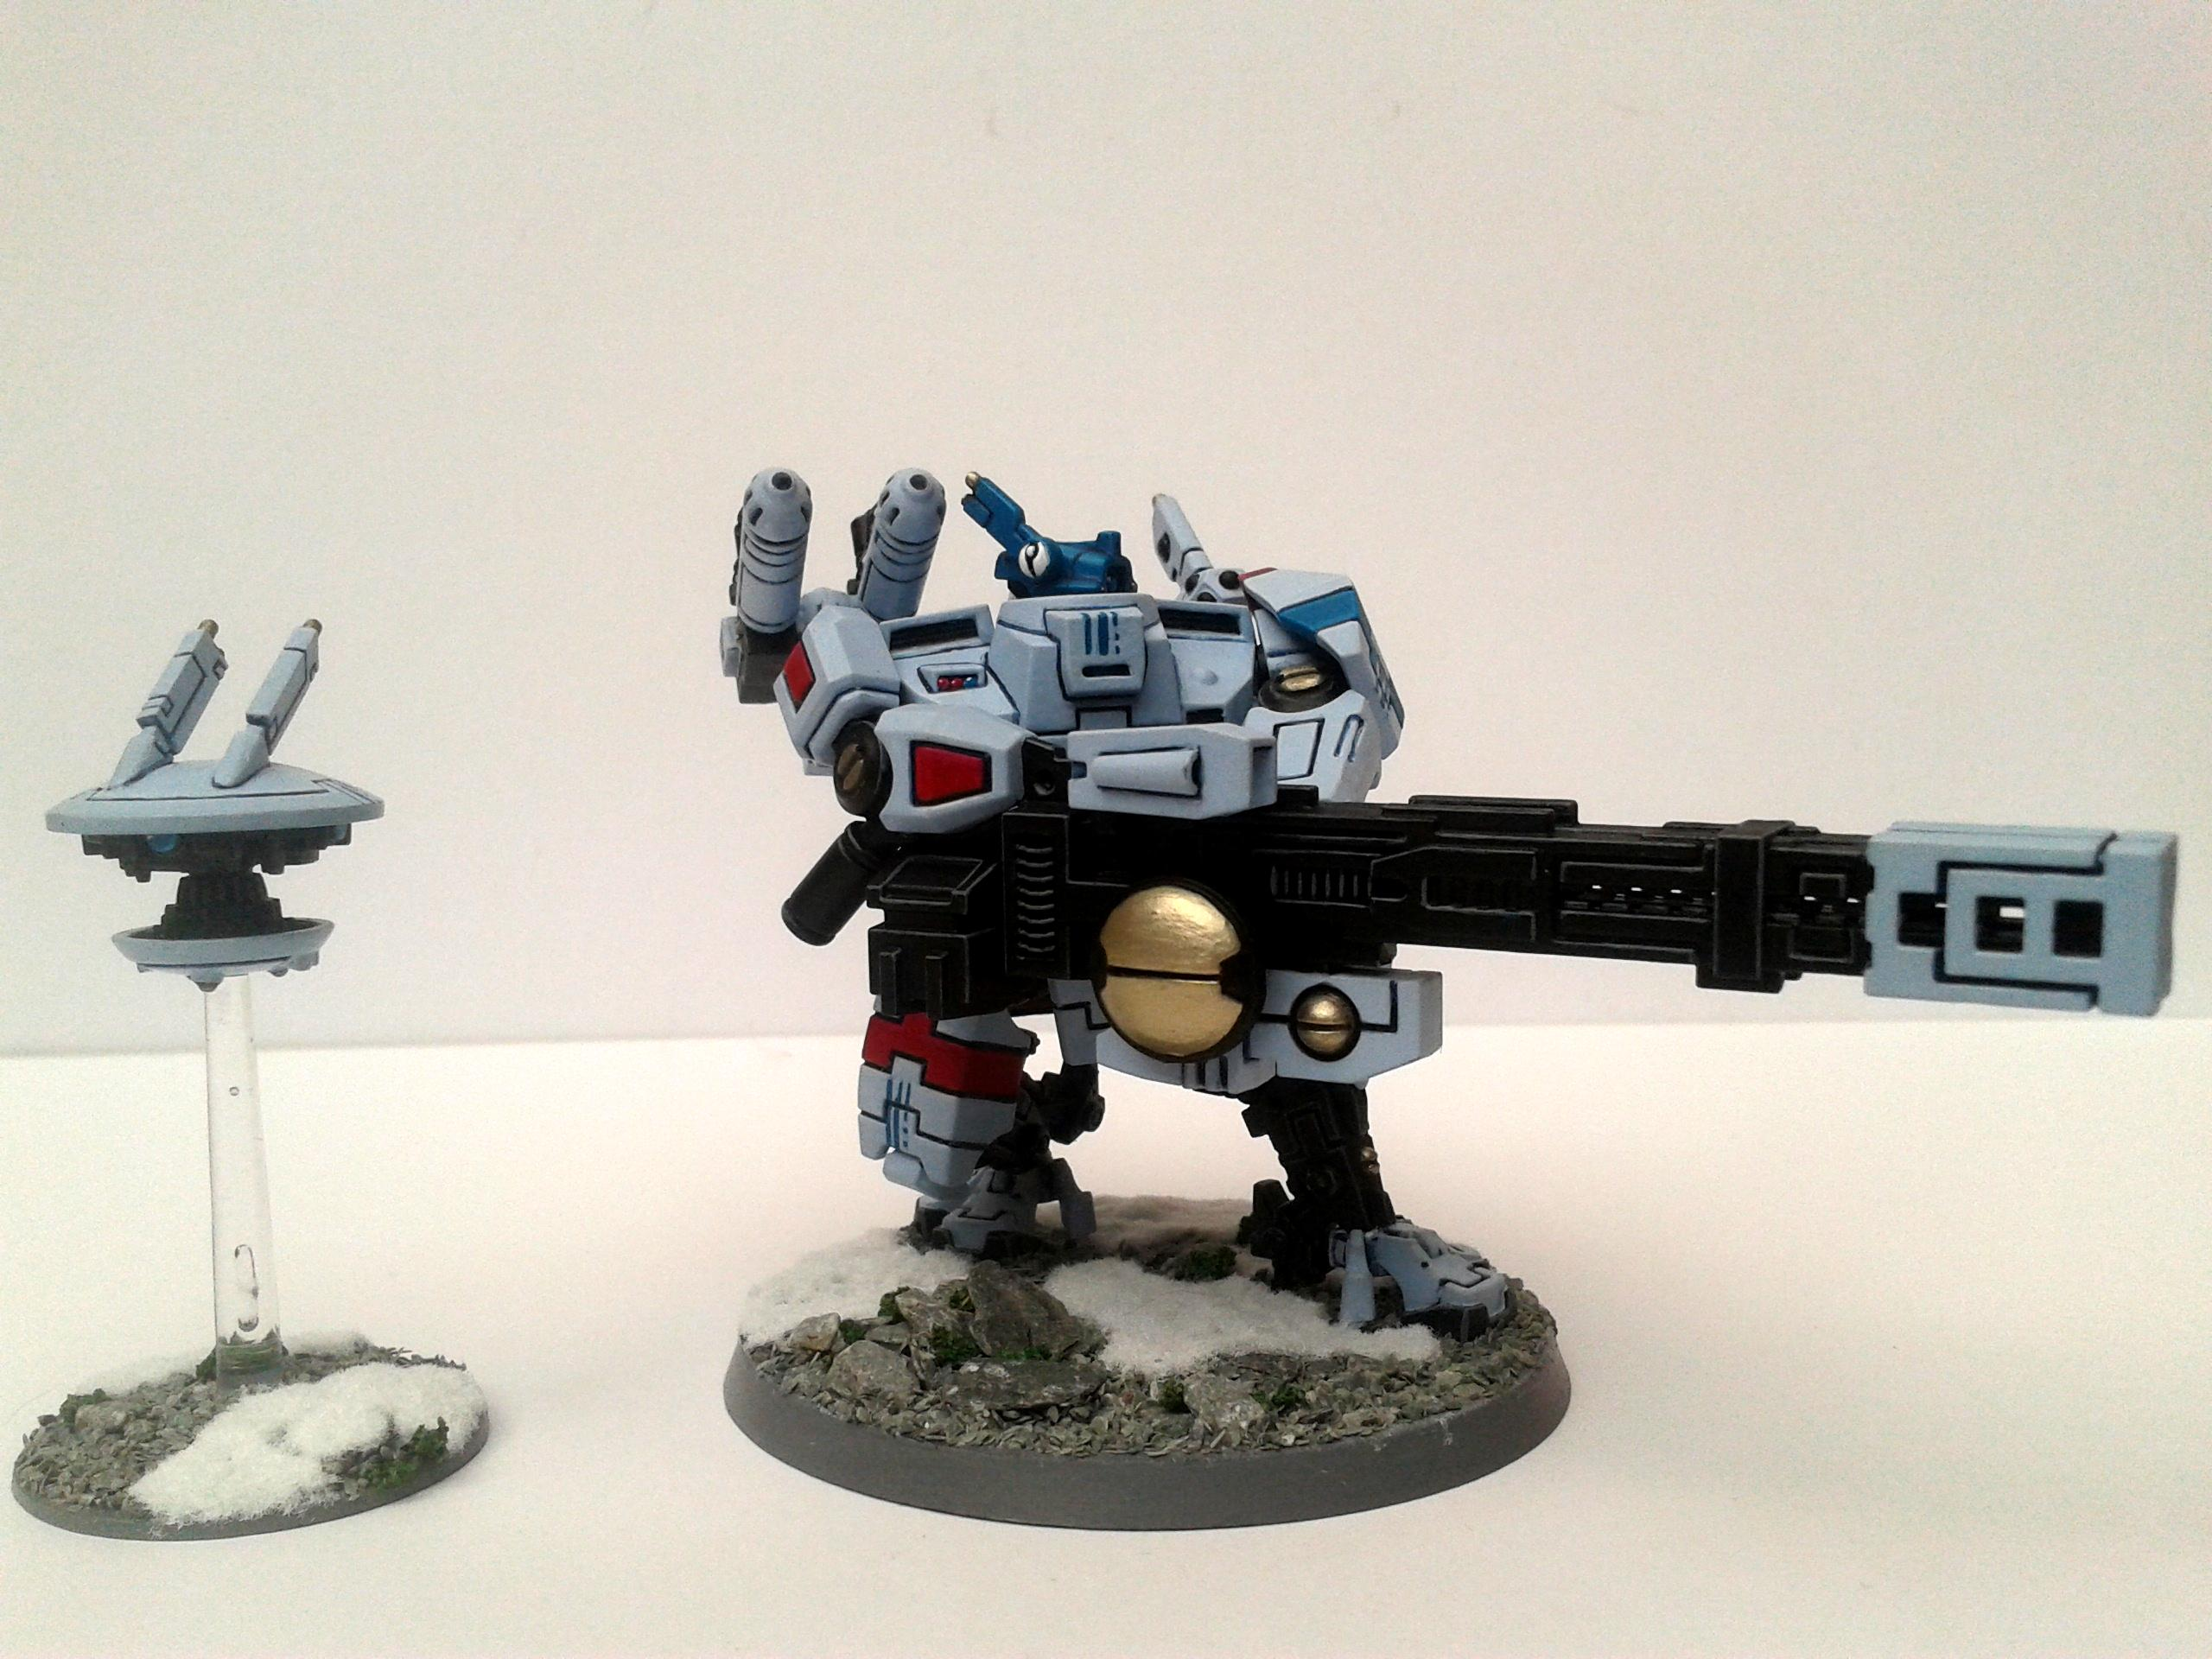 Battlesuit, Blue, Bork'an, Broadsides, Camouflage, Caste, Drone, Fire, Free, Freehand, Gun, Hand, Pathfinders, Pulse, Red, Rifle, Sept, Shield, Snow, Tau, Turquoise, Warriors